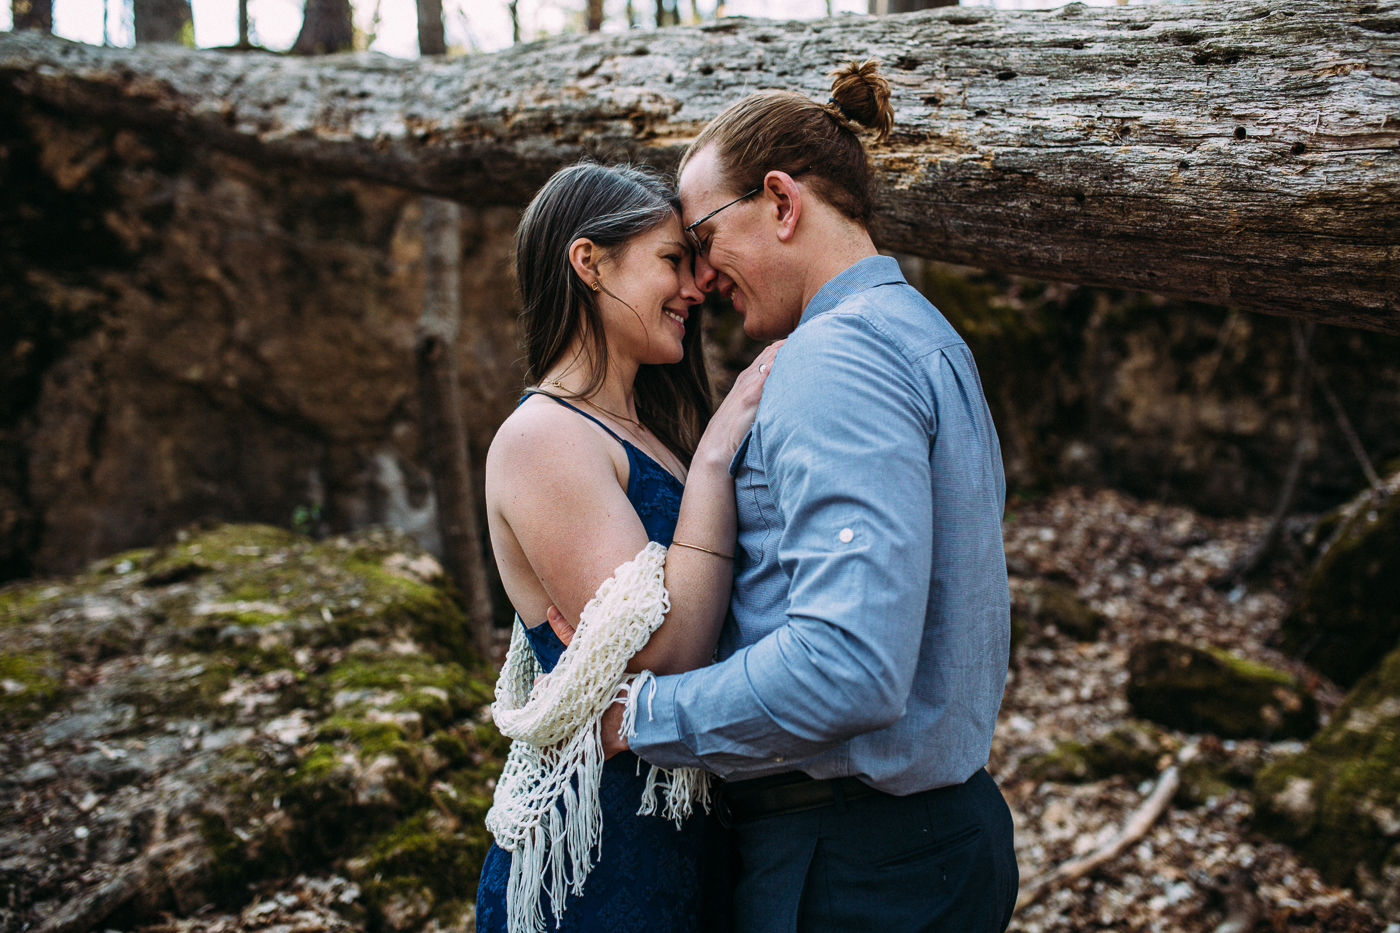 erinwheat photography-jplaurenelopement7166